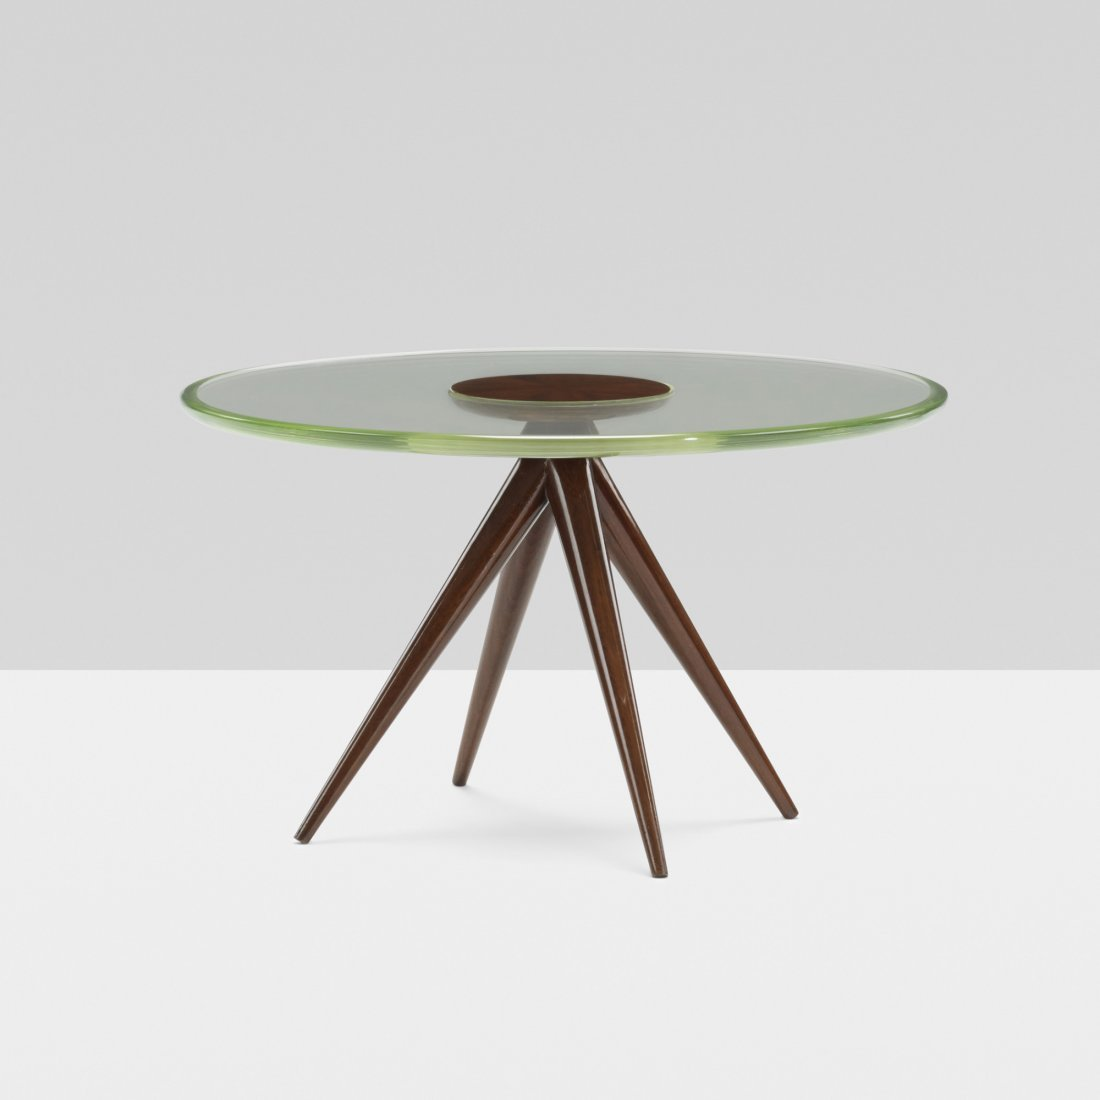 Pietro Chiesa occasional table